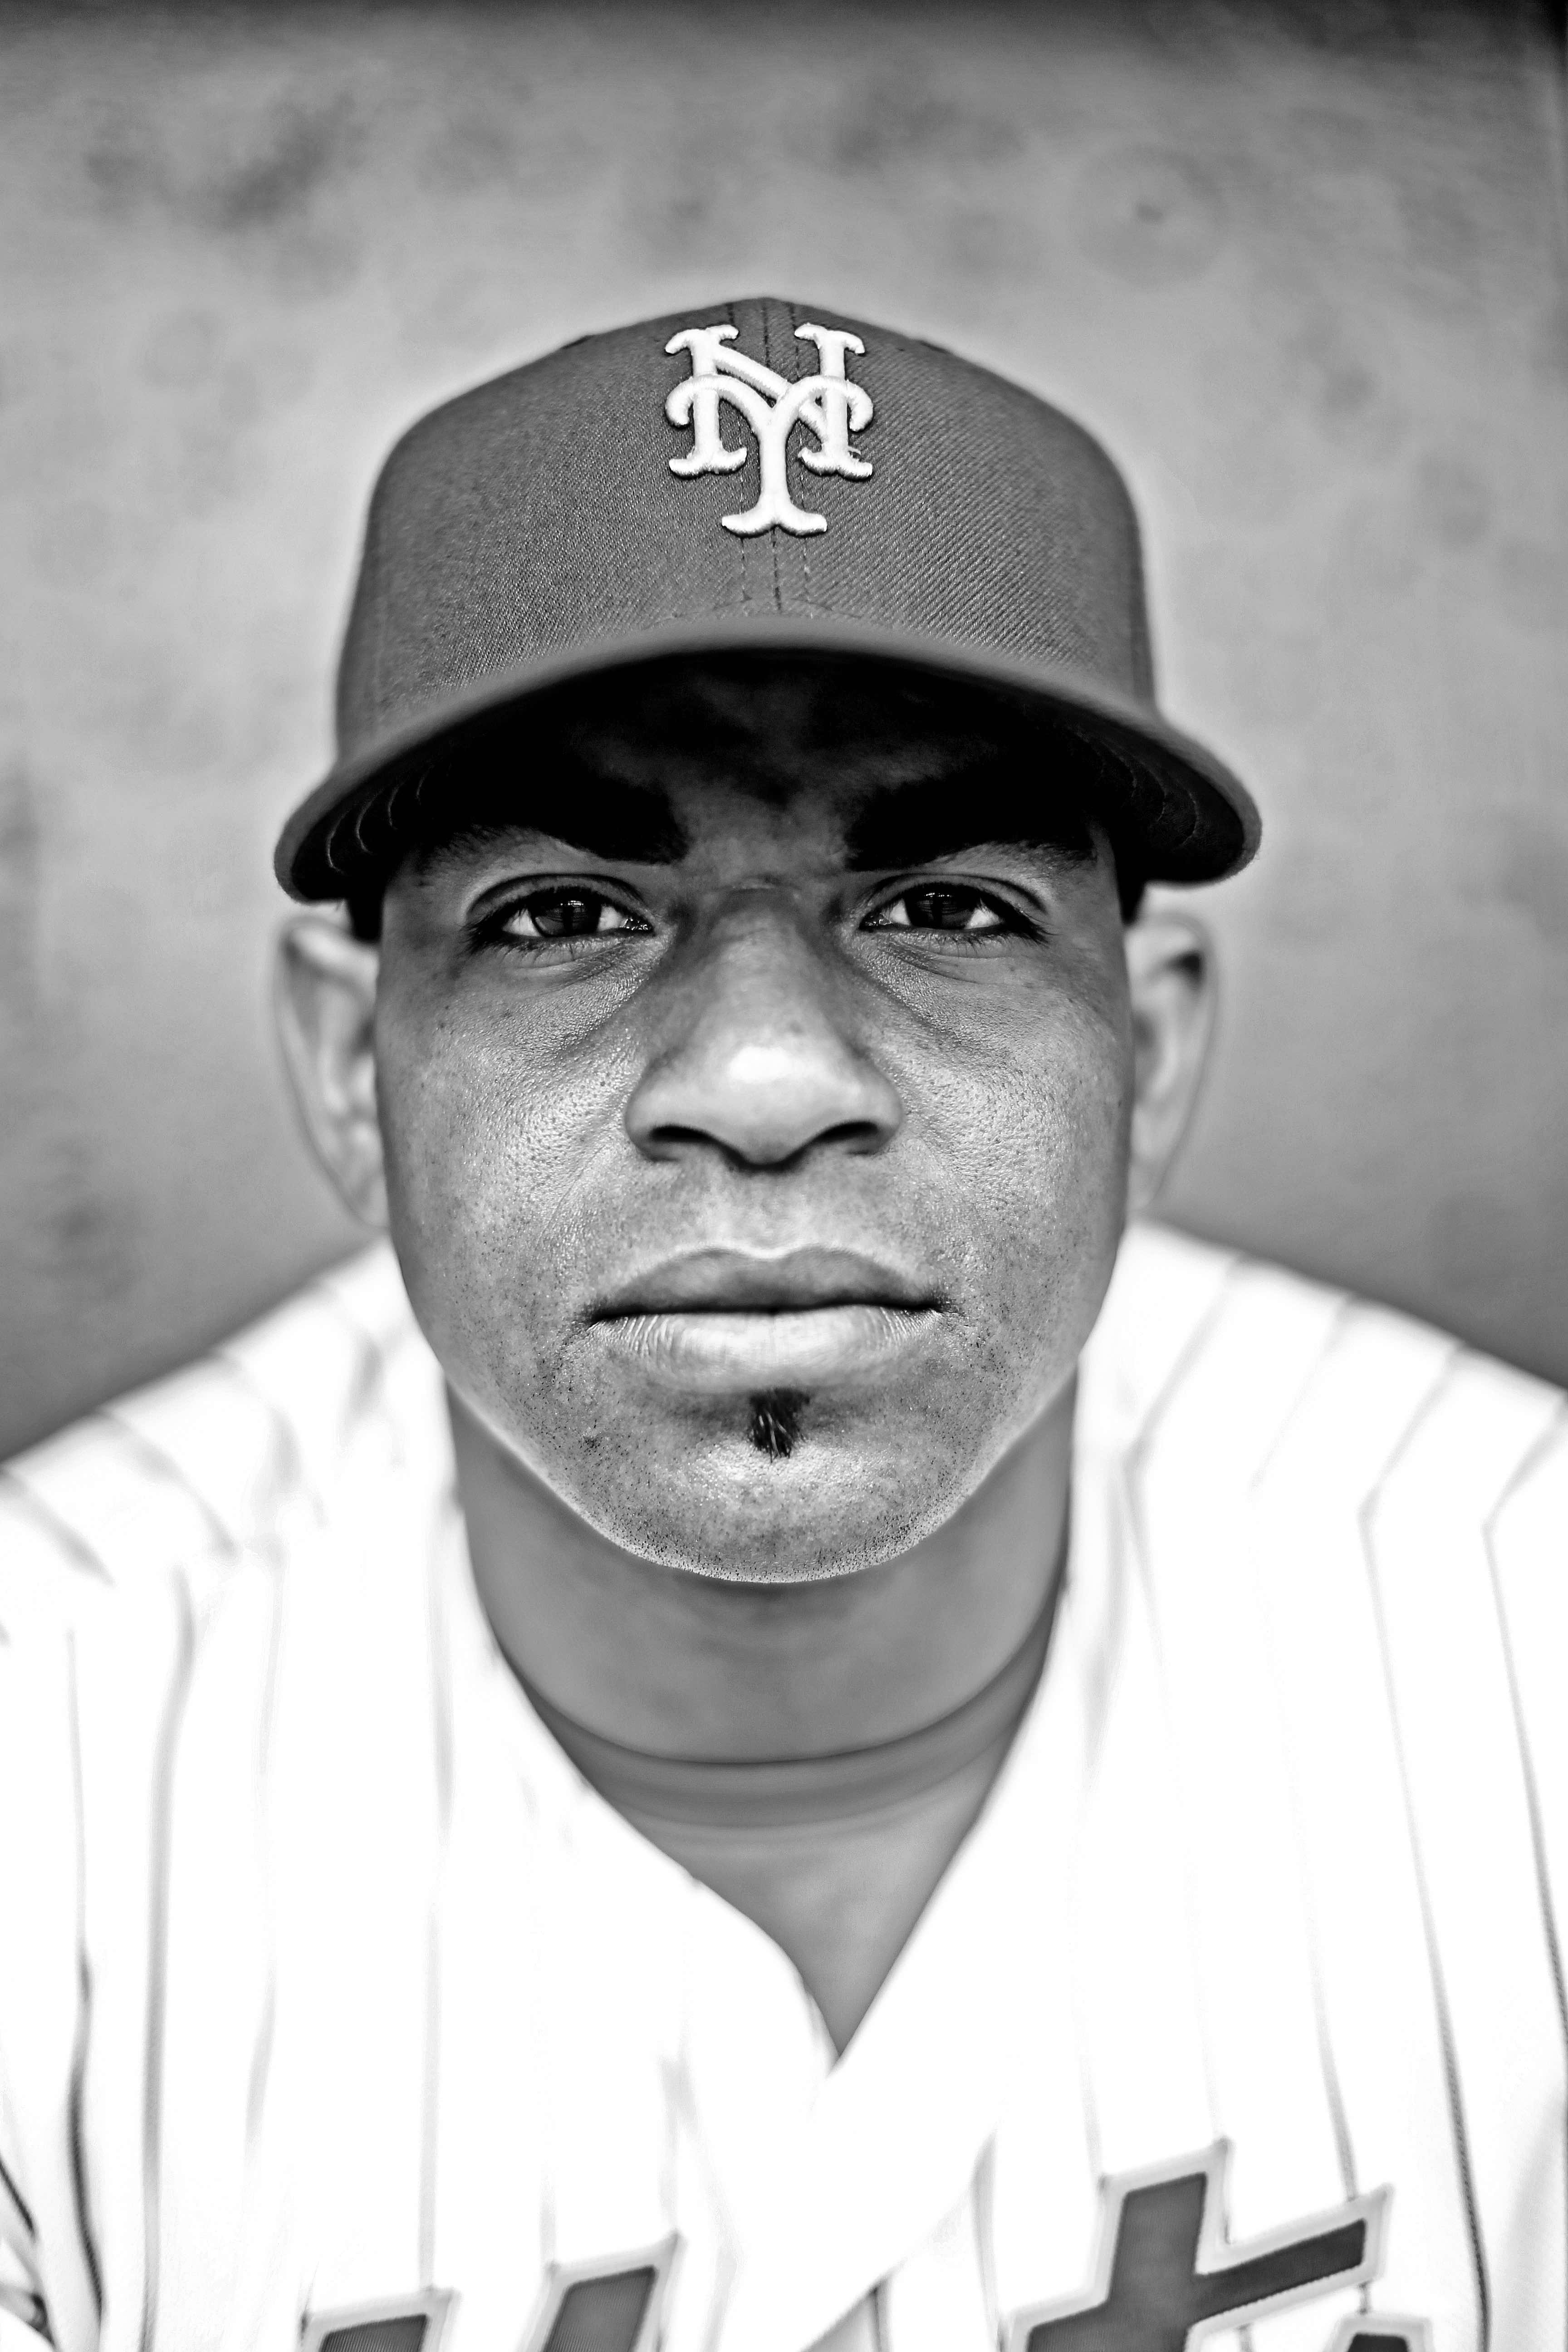 NY Mets Yoenis Cespedes (Photo byTom DiPace)